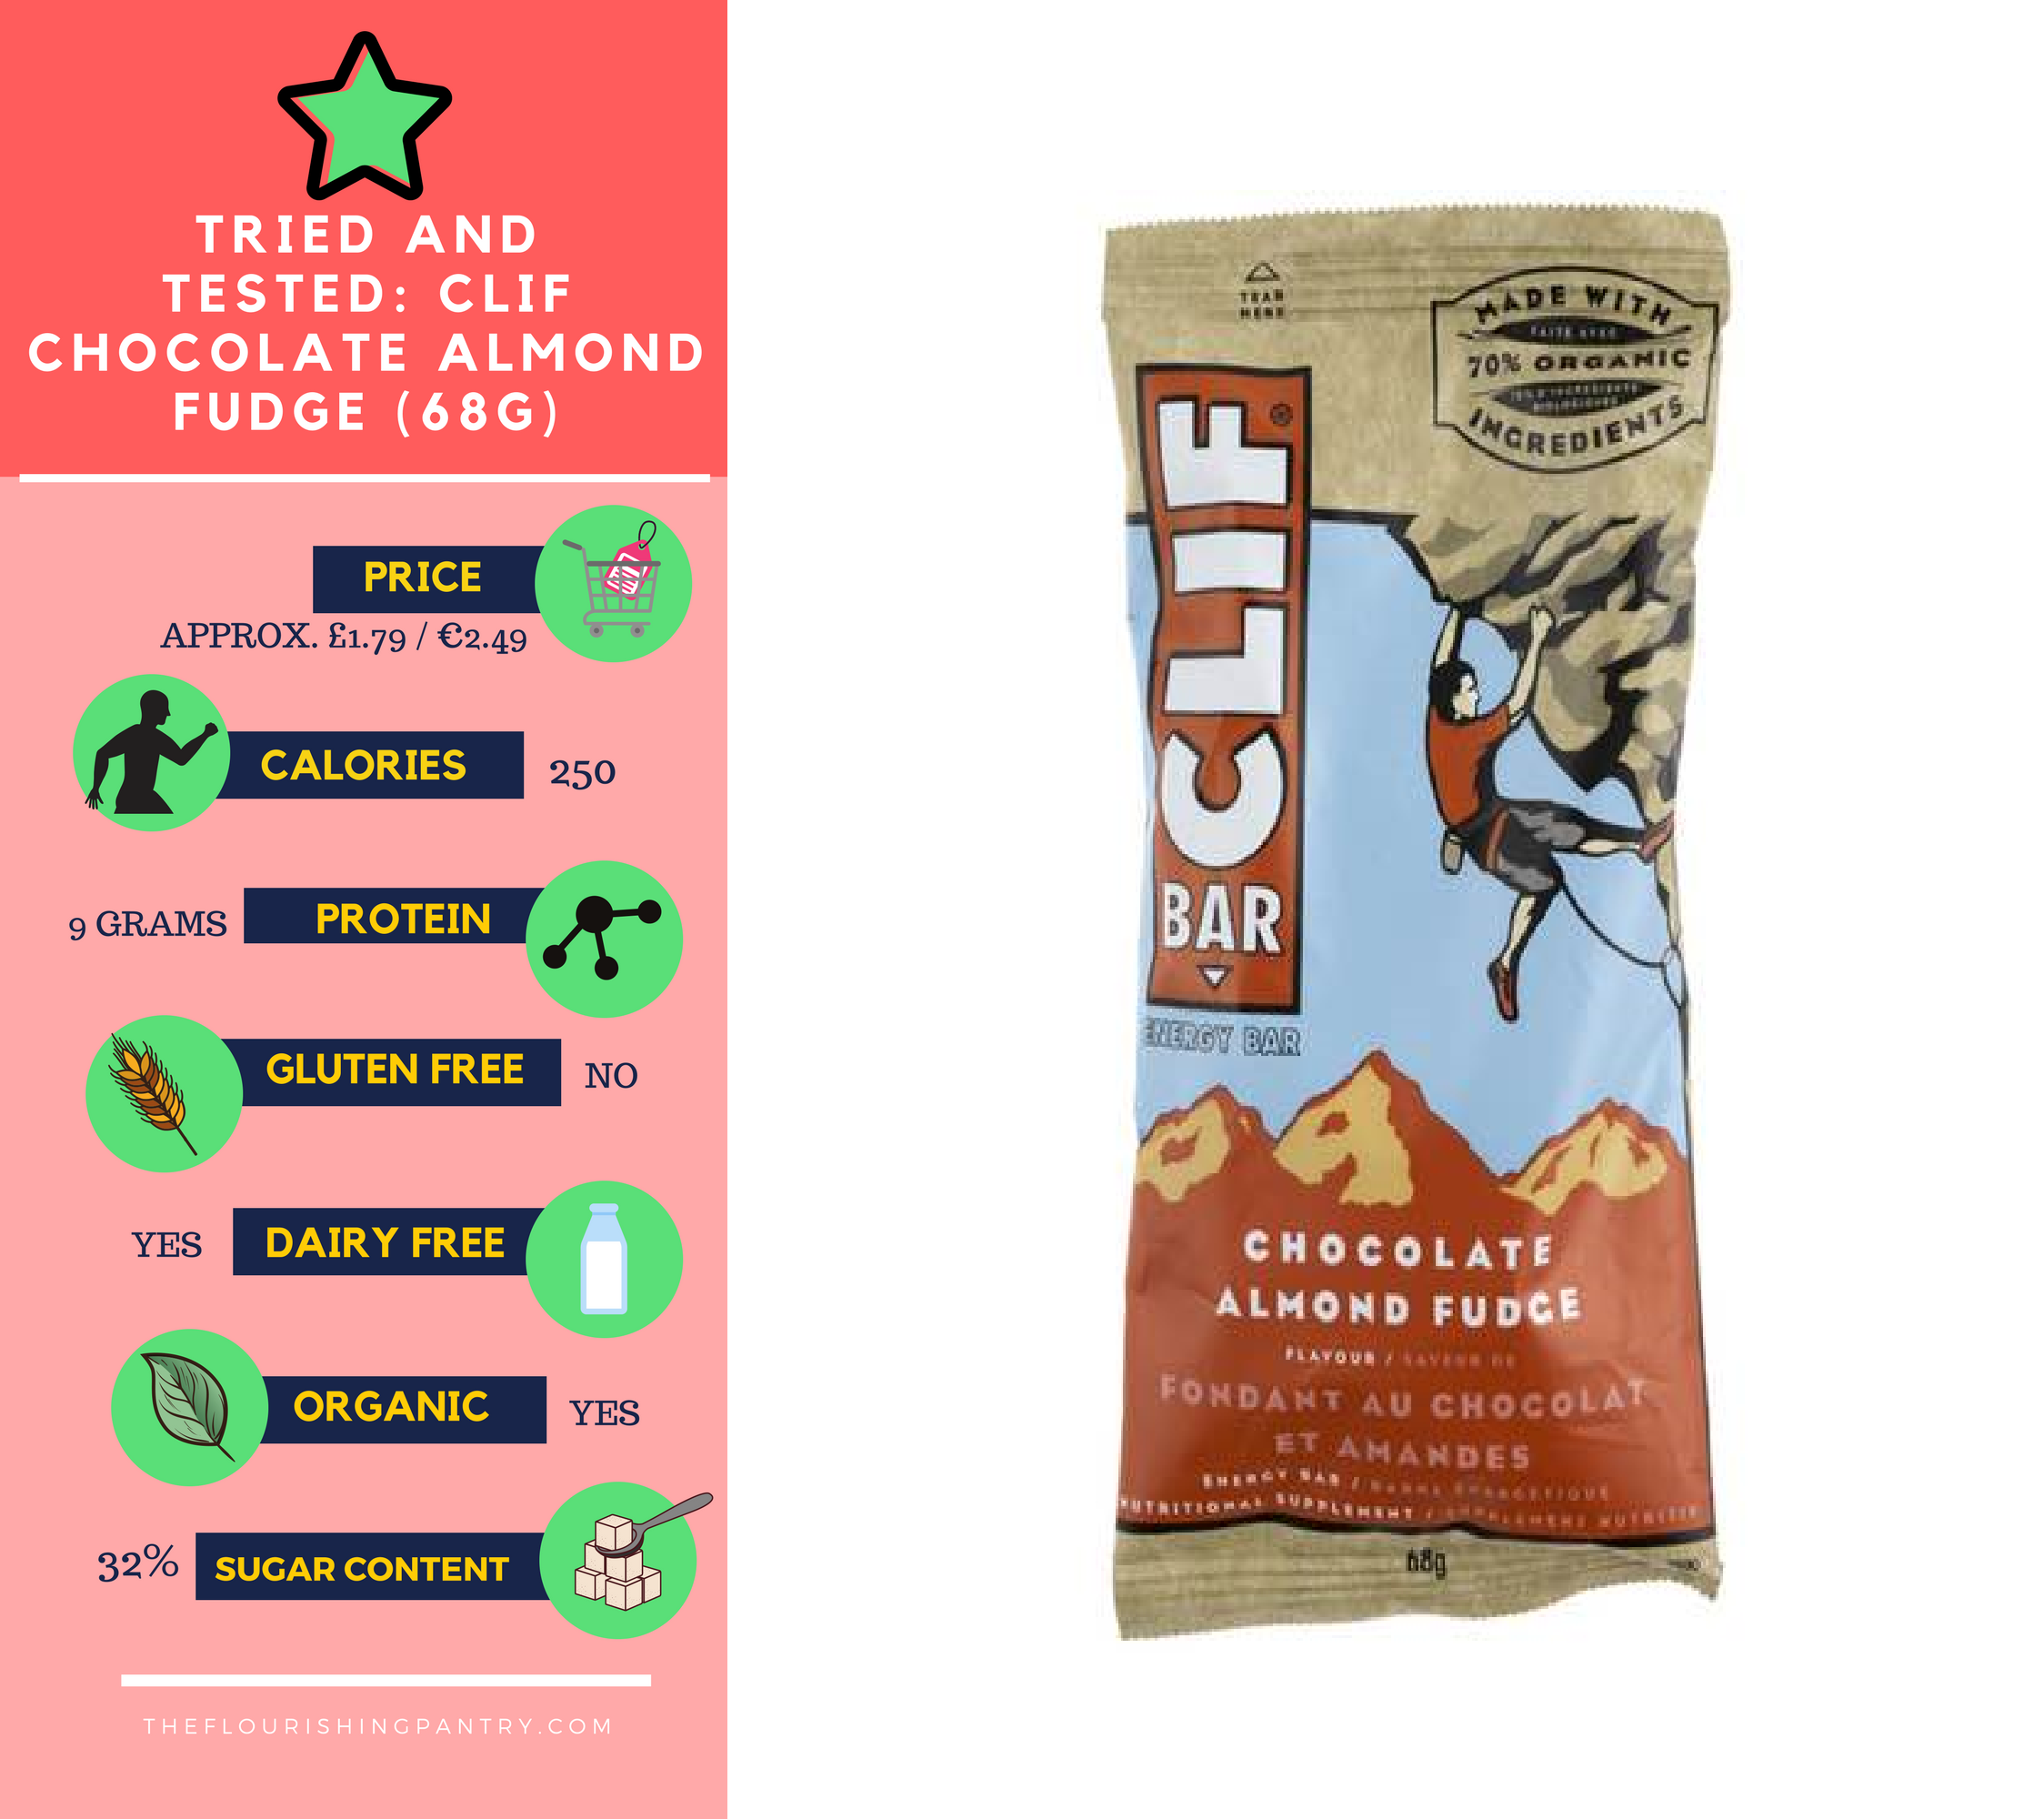 Clif Chocolate and Almond review | The Flourishing Pantry